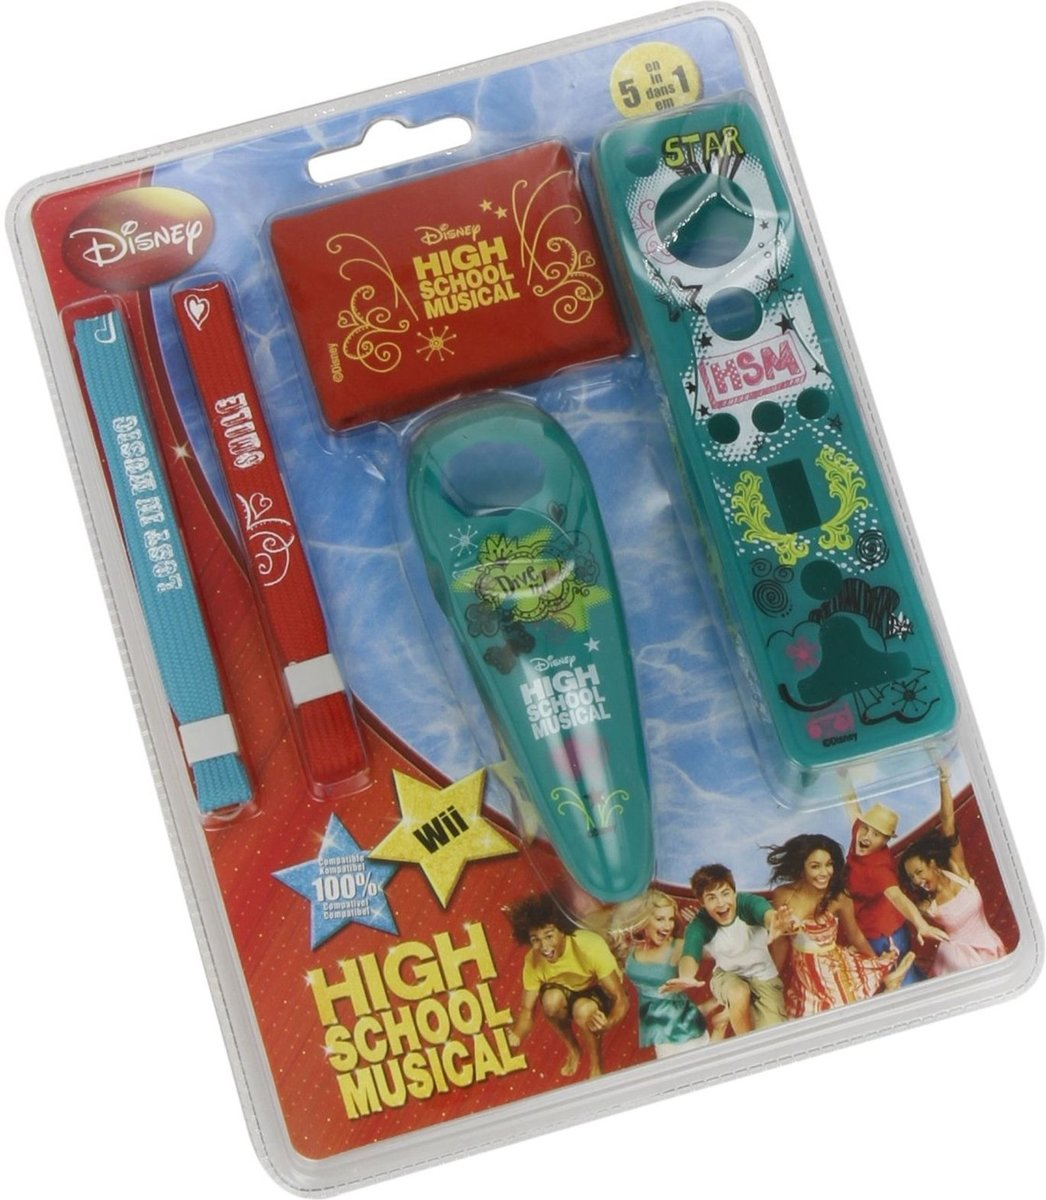 High School Musical Wii Remote Kit